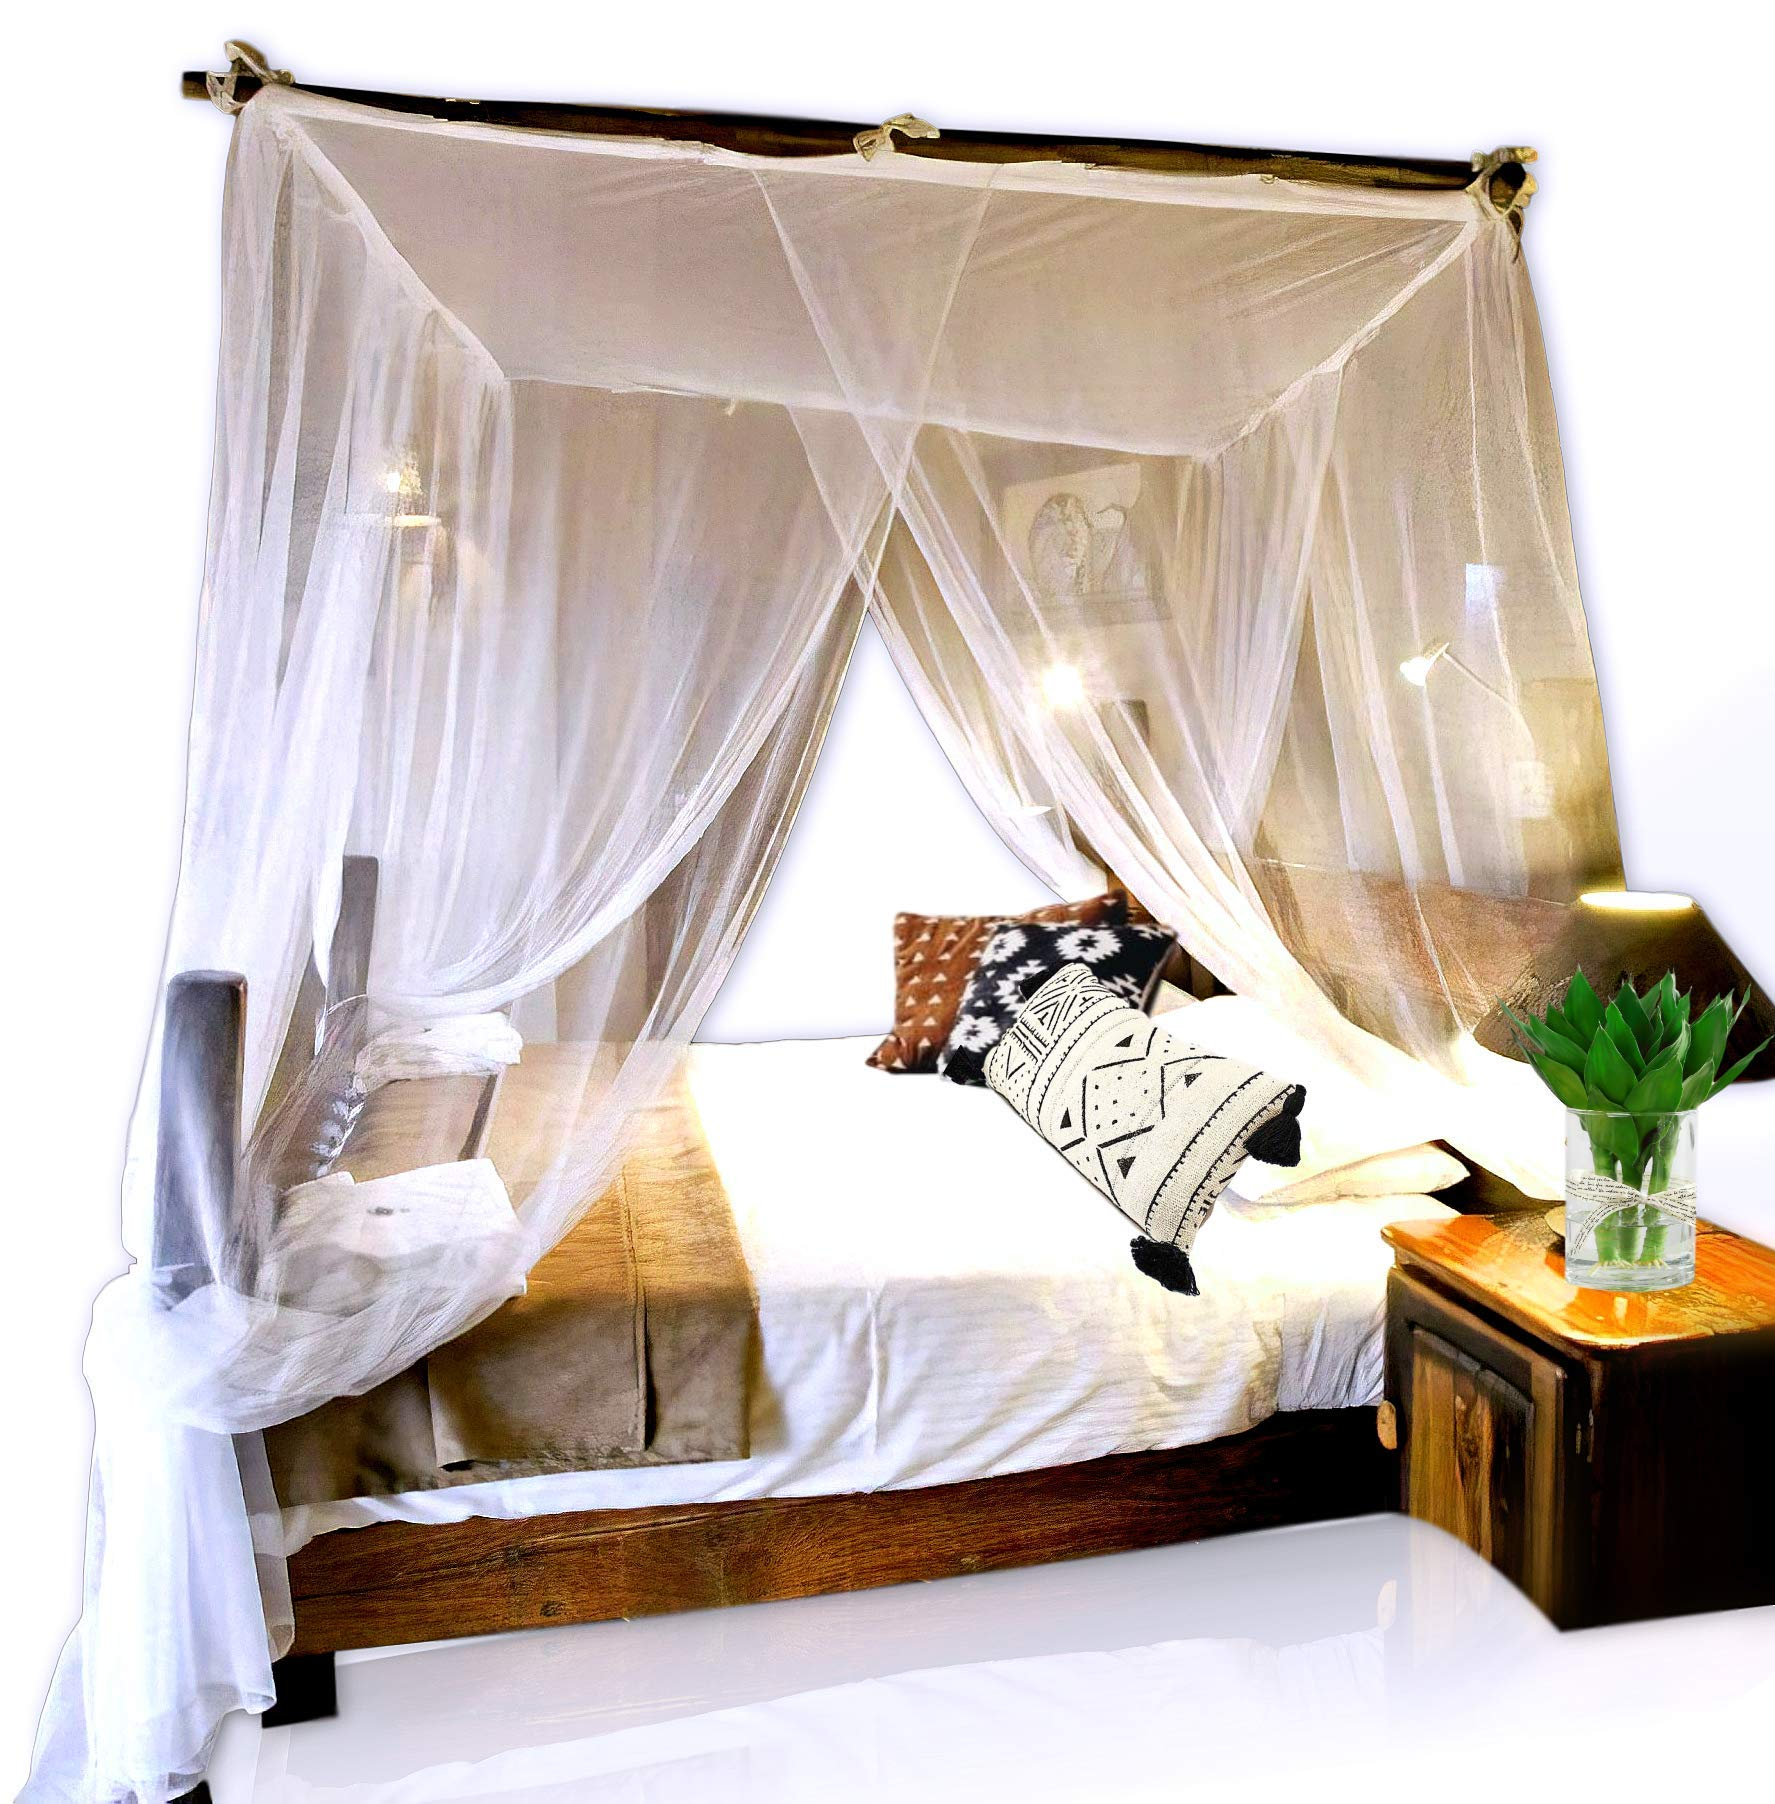 Basik Nature Jumbo Mosquito Net Canopy for Queen King Size Bed. Thin Mesh Netting Lets Breeze in and Bugs Out